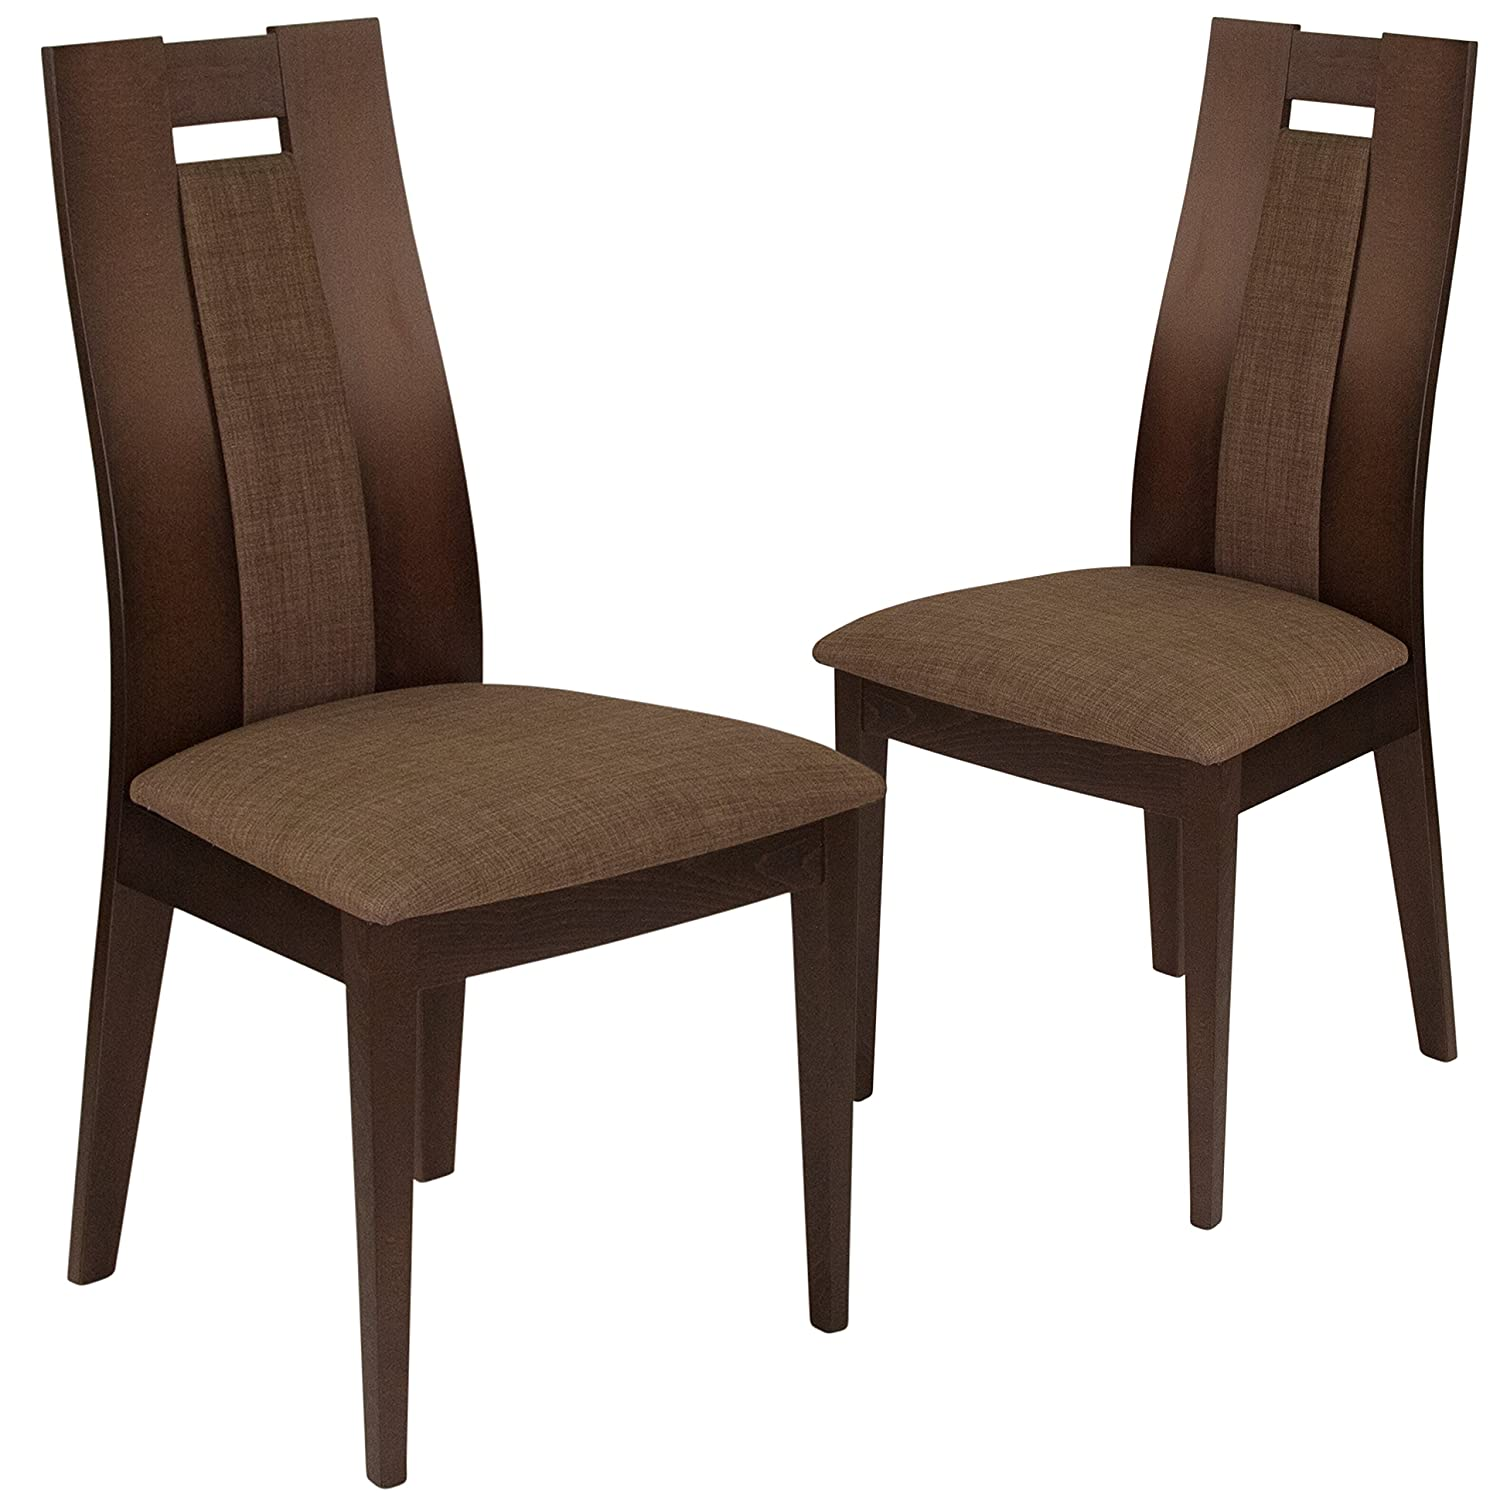 Amazon com flash furniture 2 pk almont espresso finish wood dining chair with curved slat wood and golden honey brown fabric seat chairs